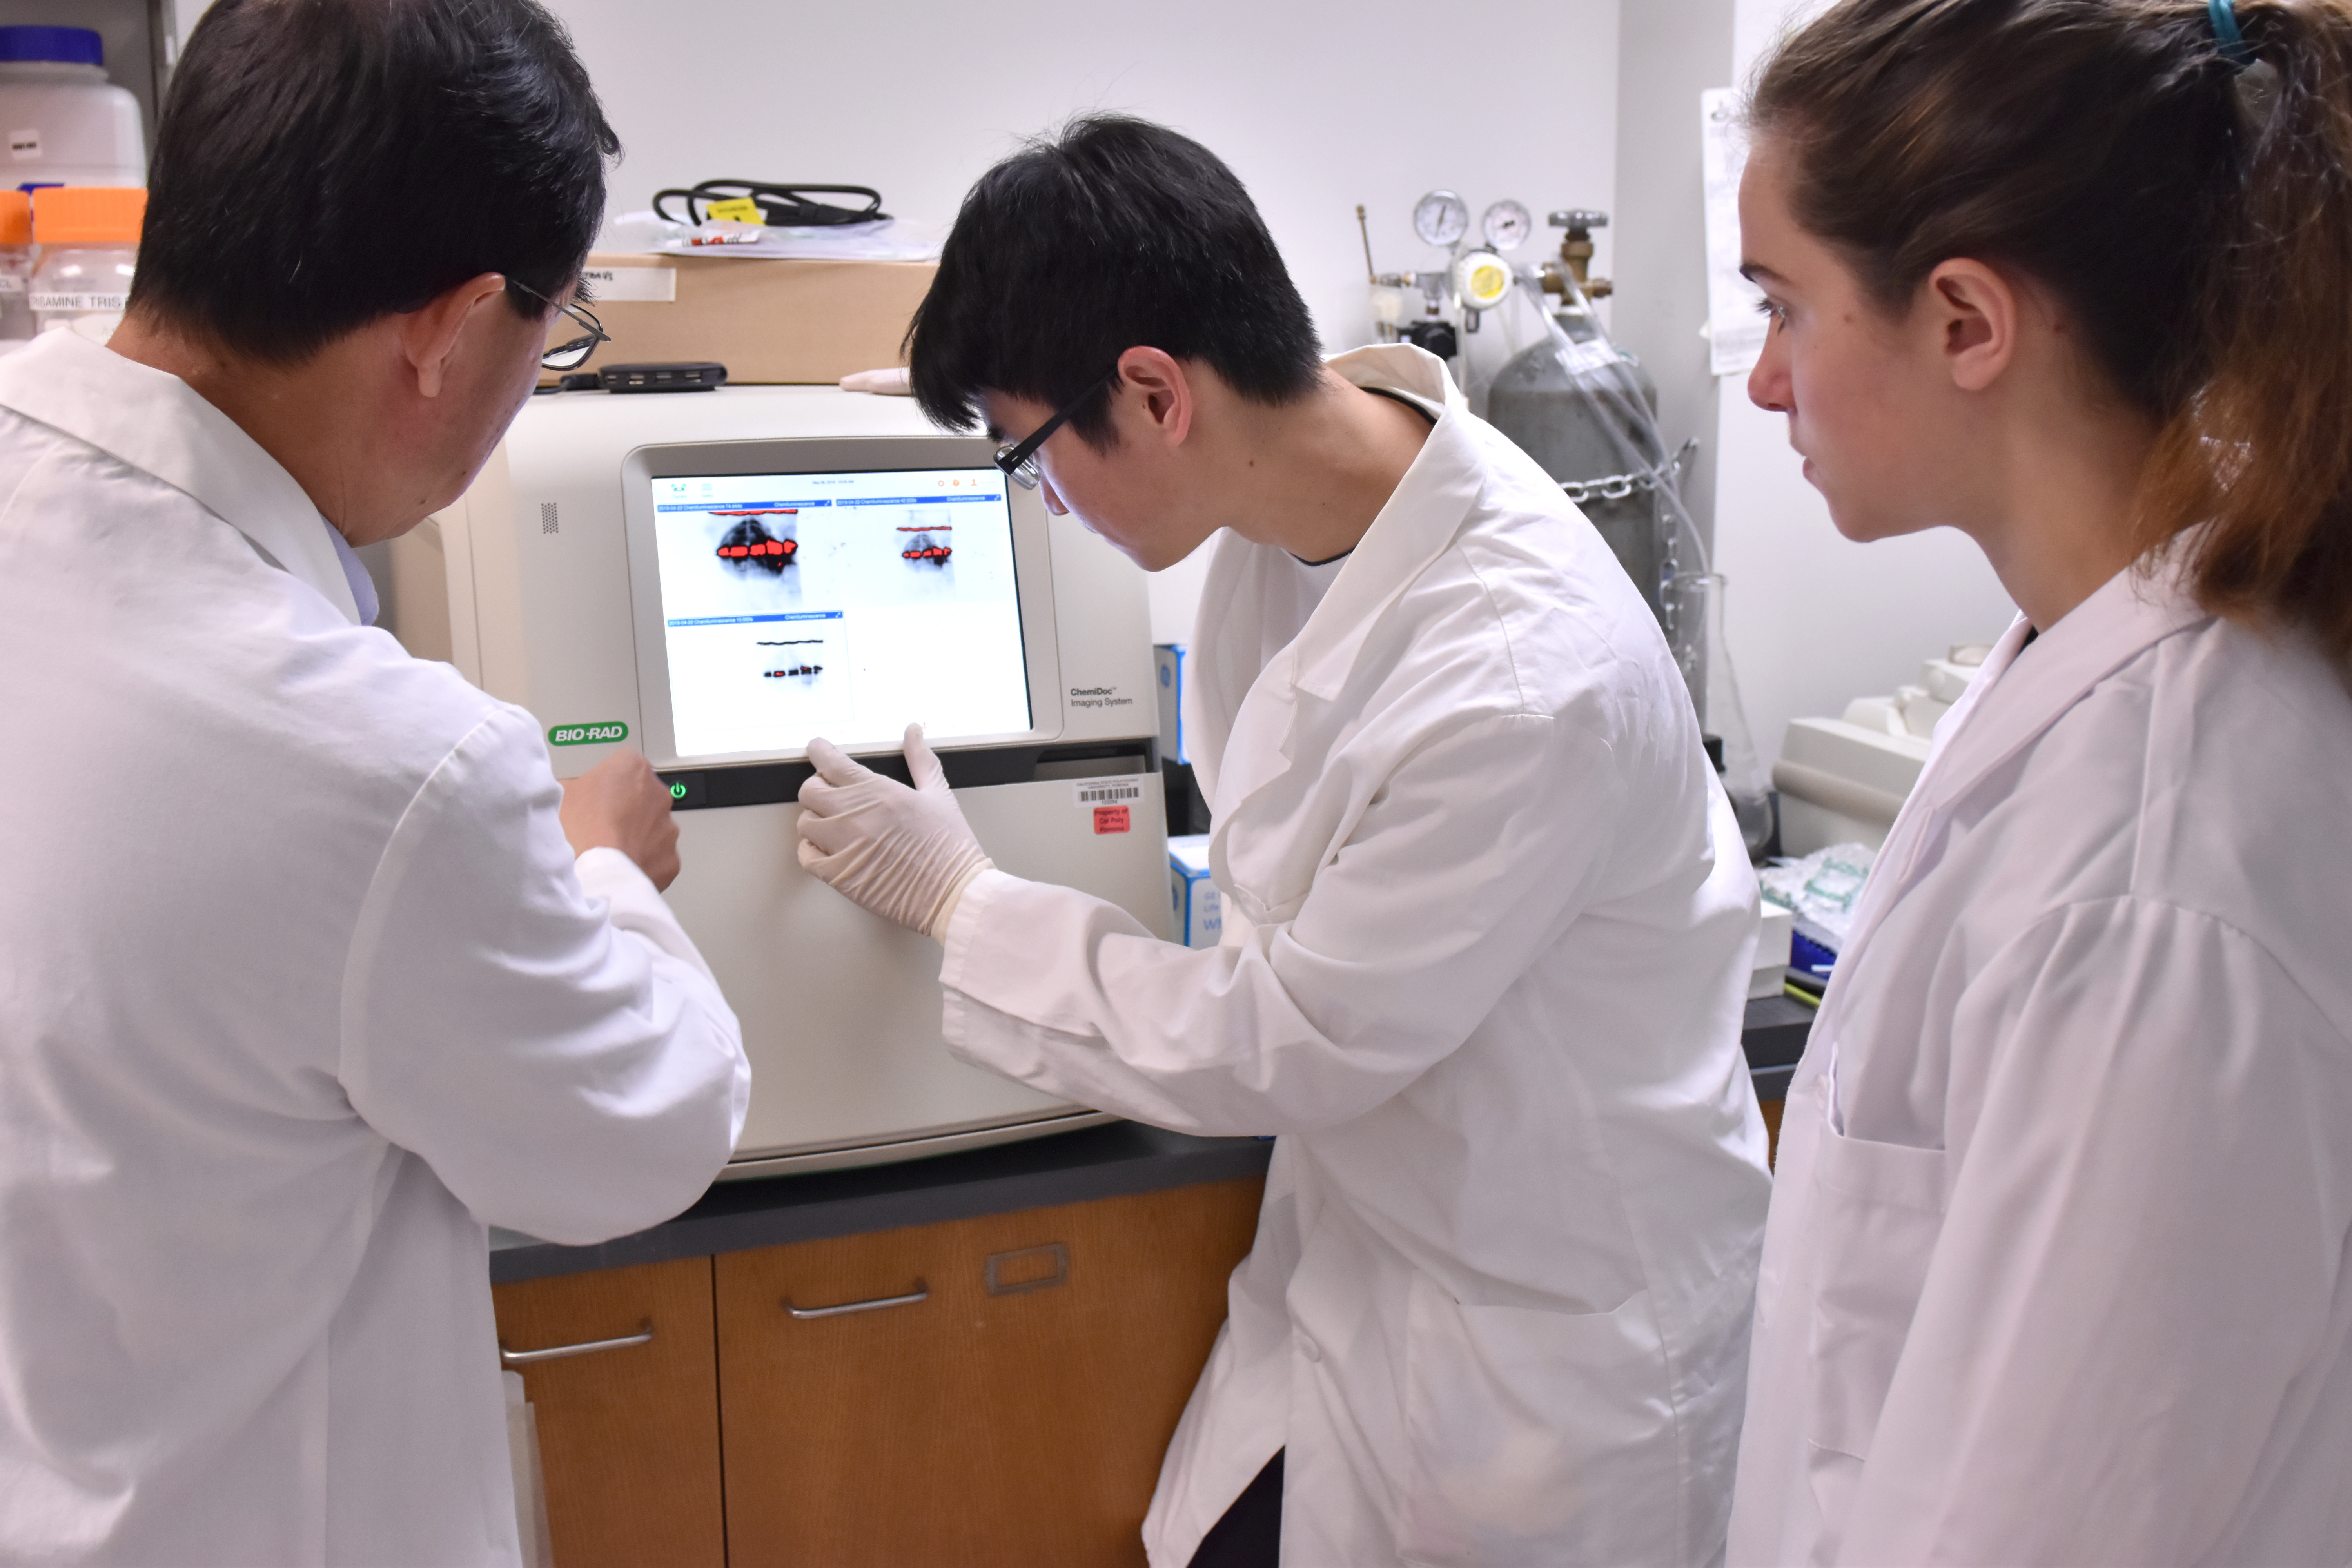 Professor Junjun Liu, graduate student Brandon Lam, and undergraduate Alana Schonbrun examine protein detection results on an imager.